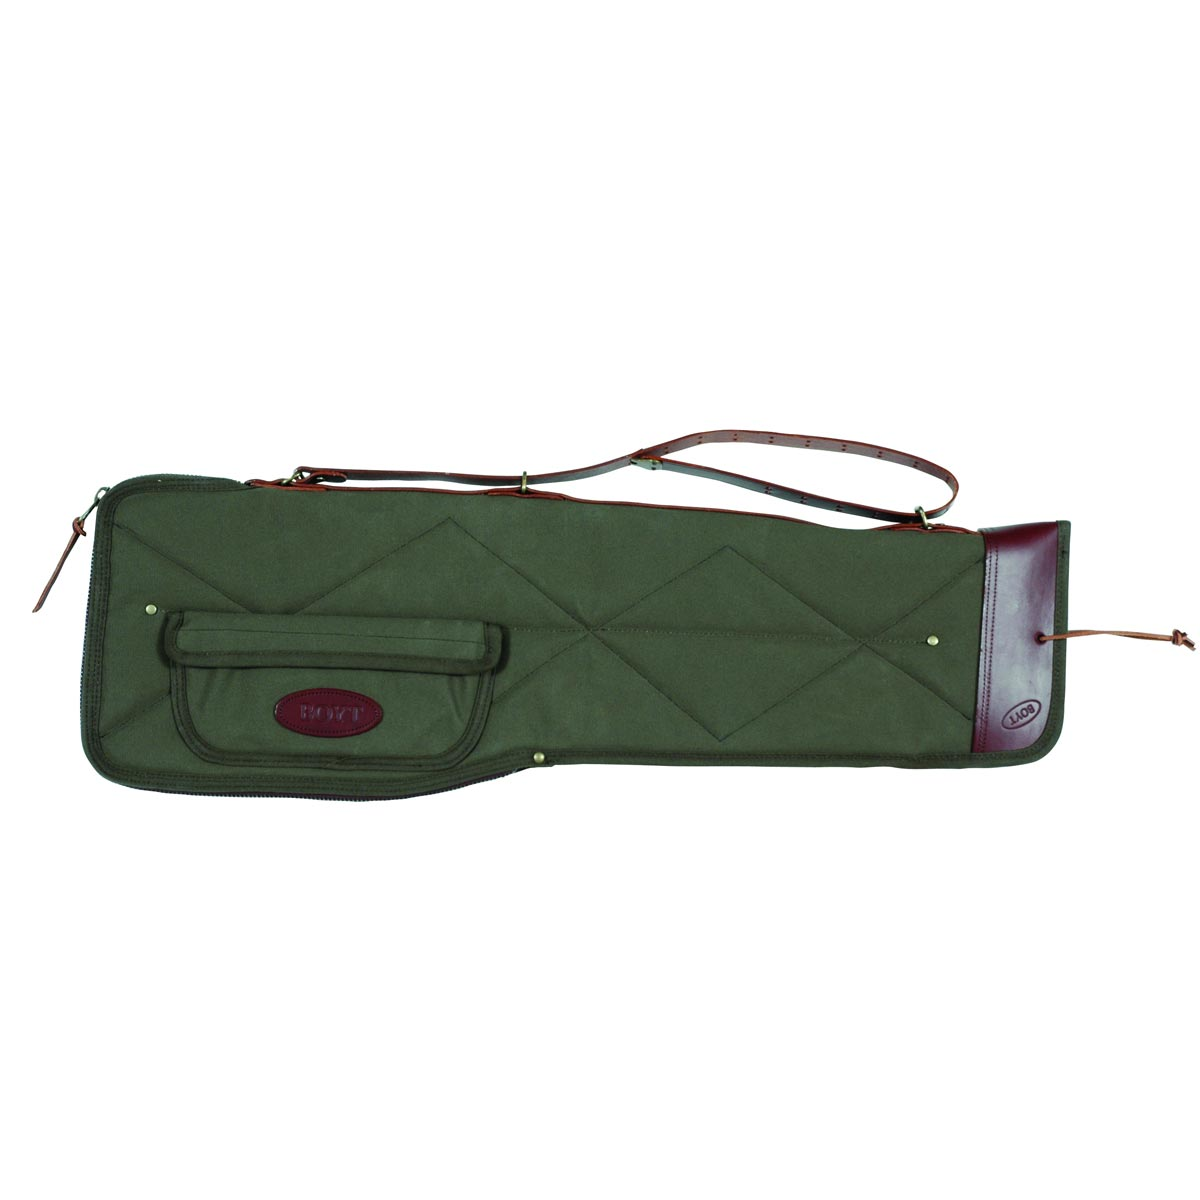 Boyt GC214WC Take-Down Canvas Gun Case